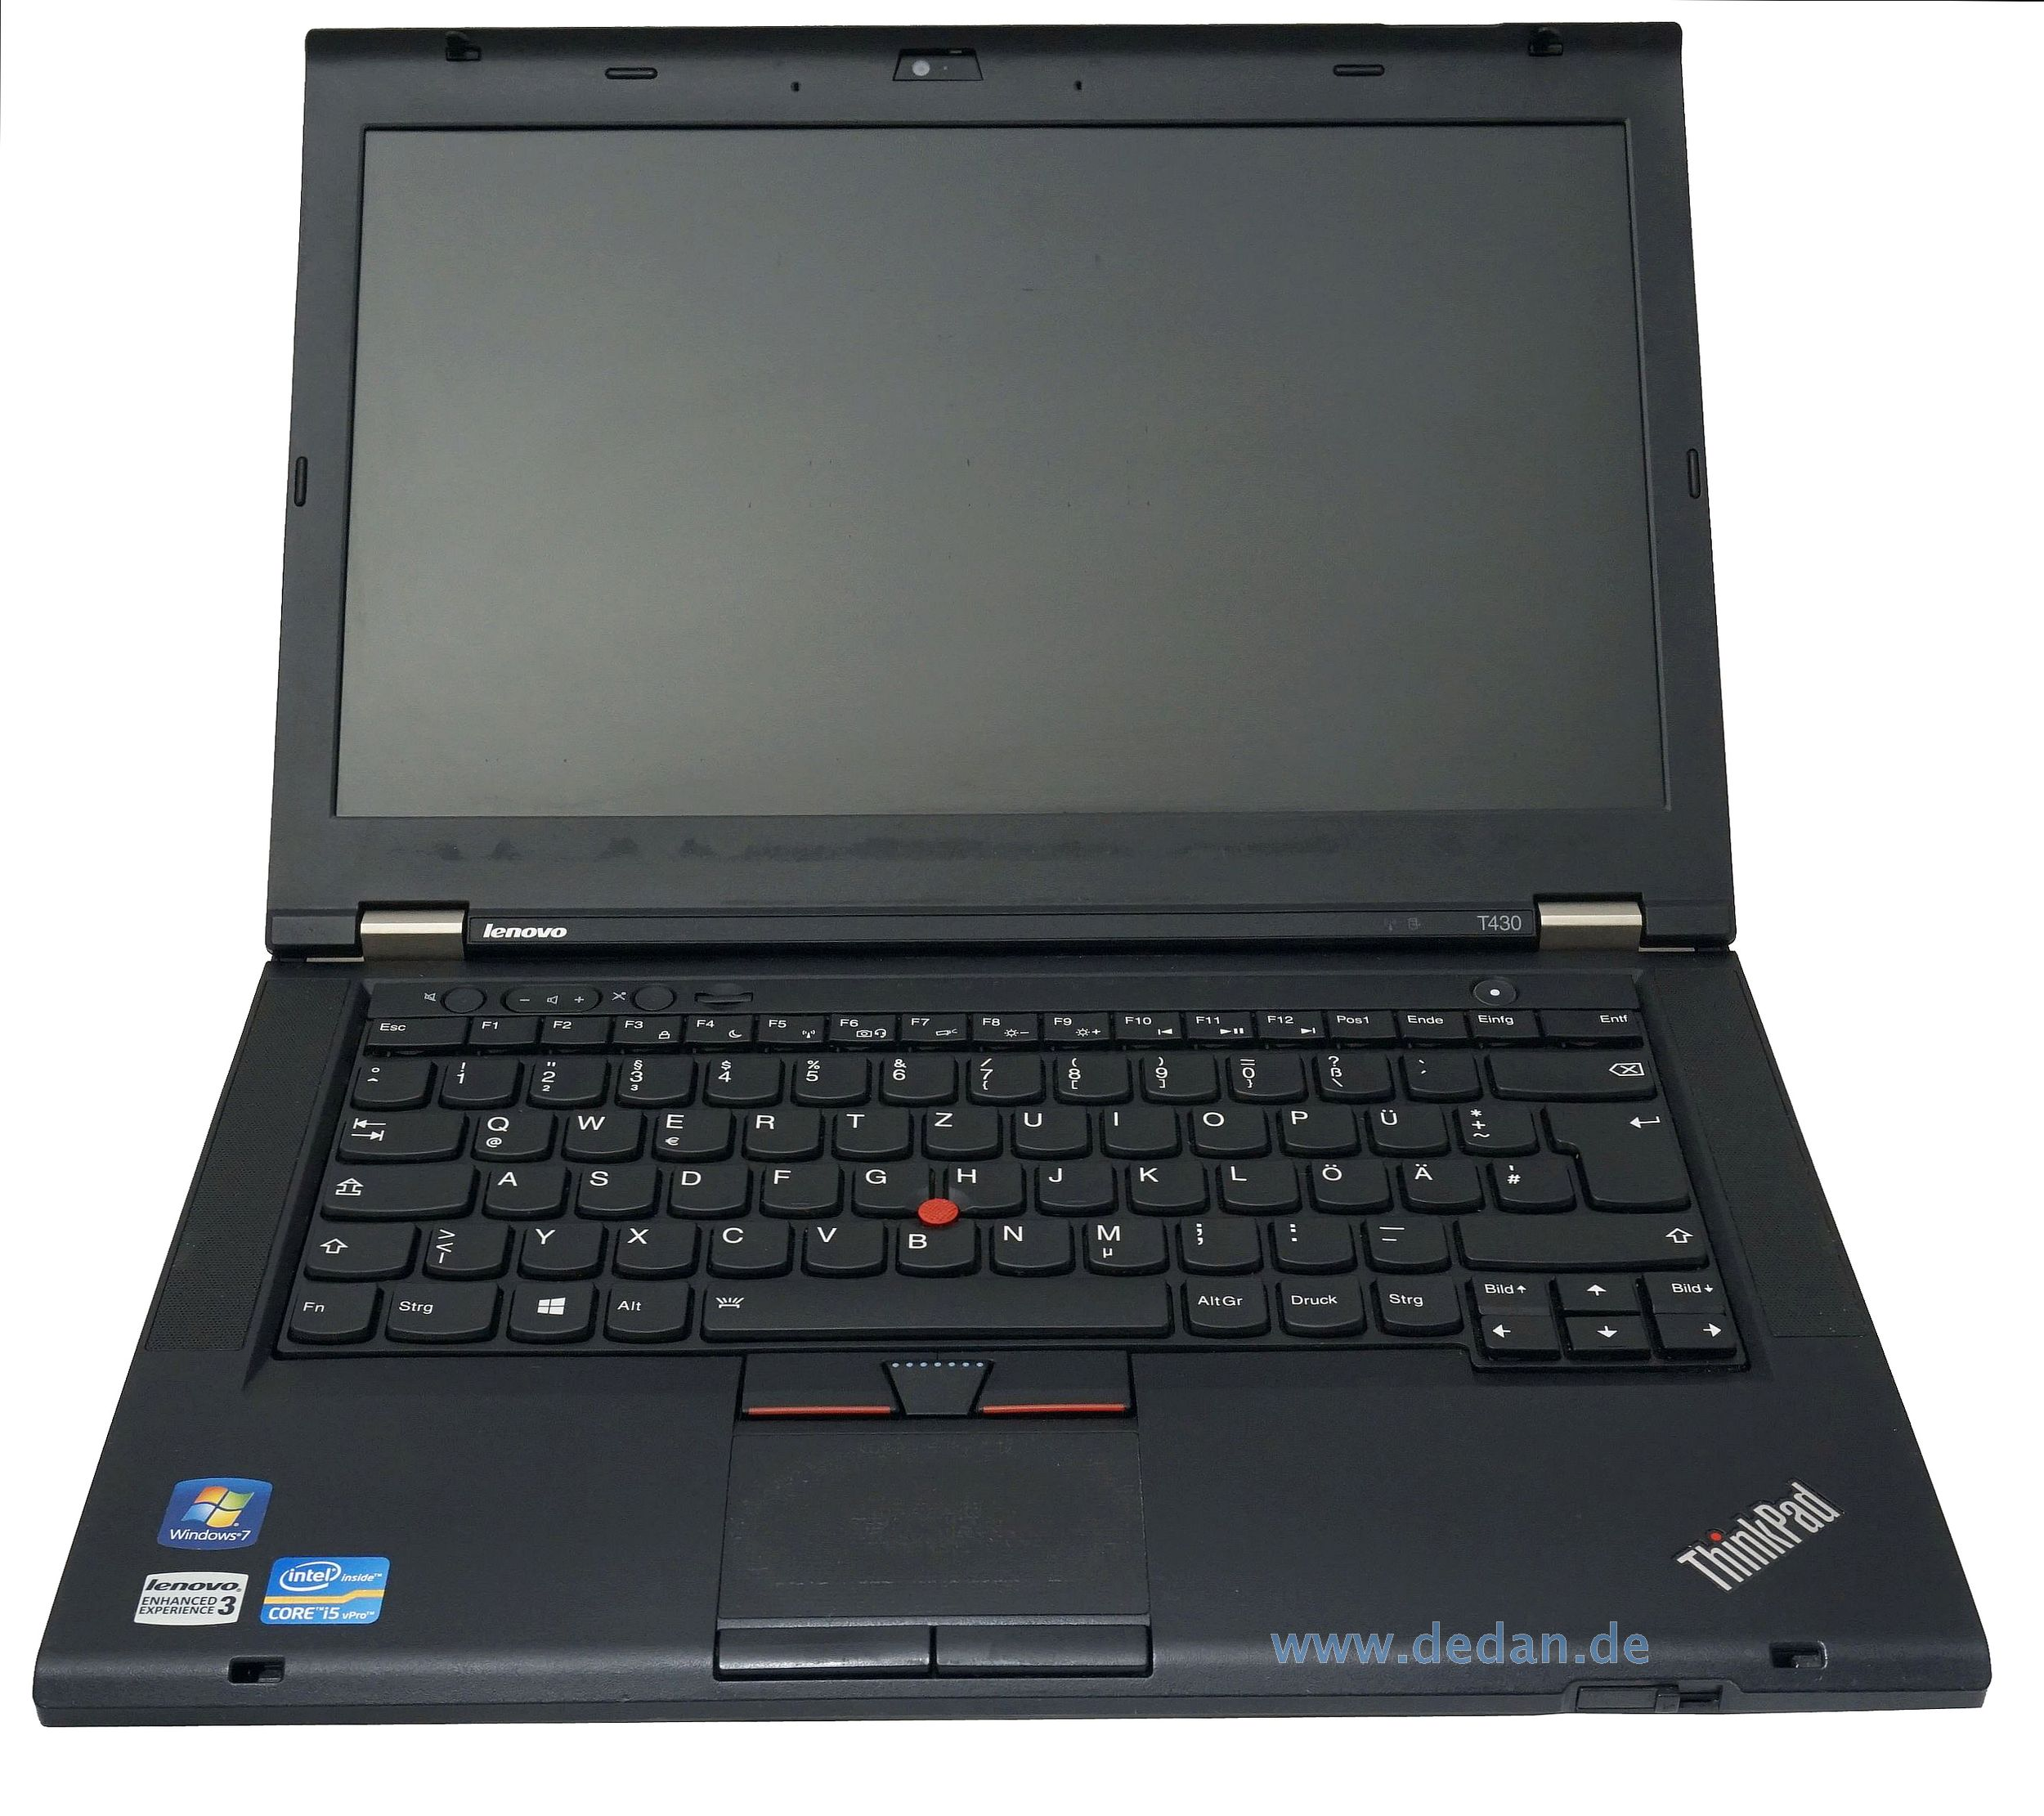 Lenovo Thinkpad T430 I5 2 6ghz 4gb Ram 320gb Hdd Umts